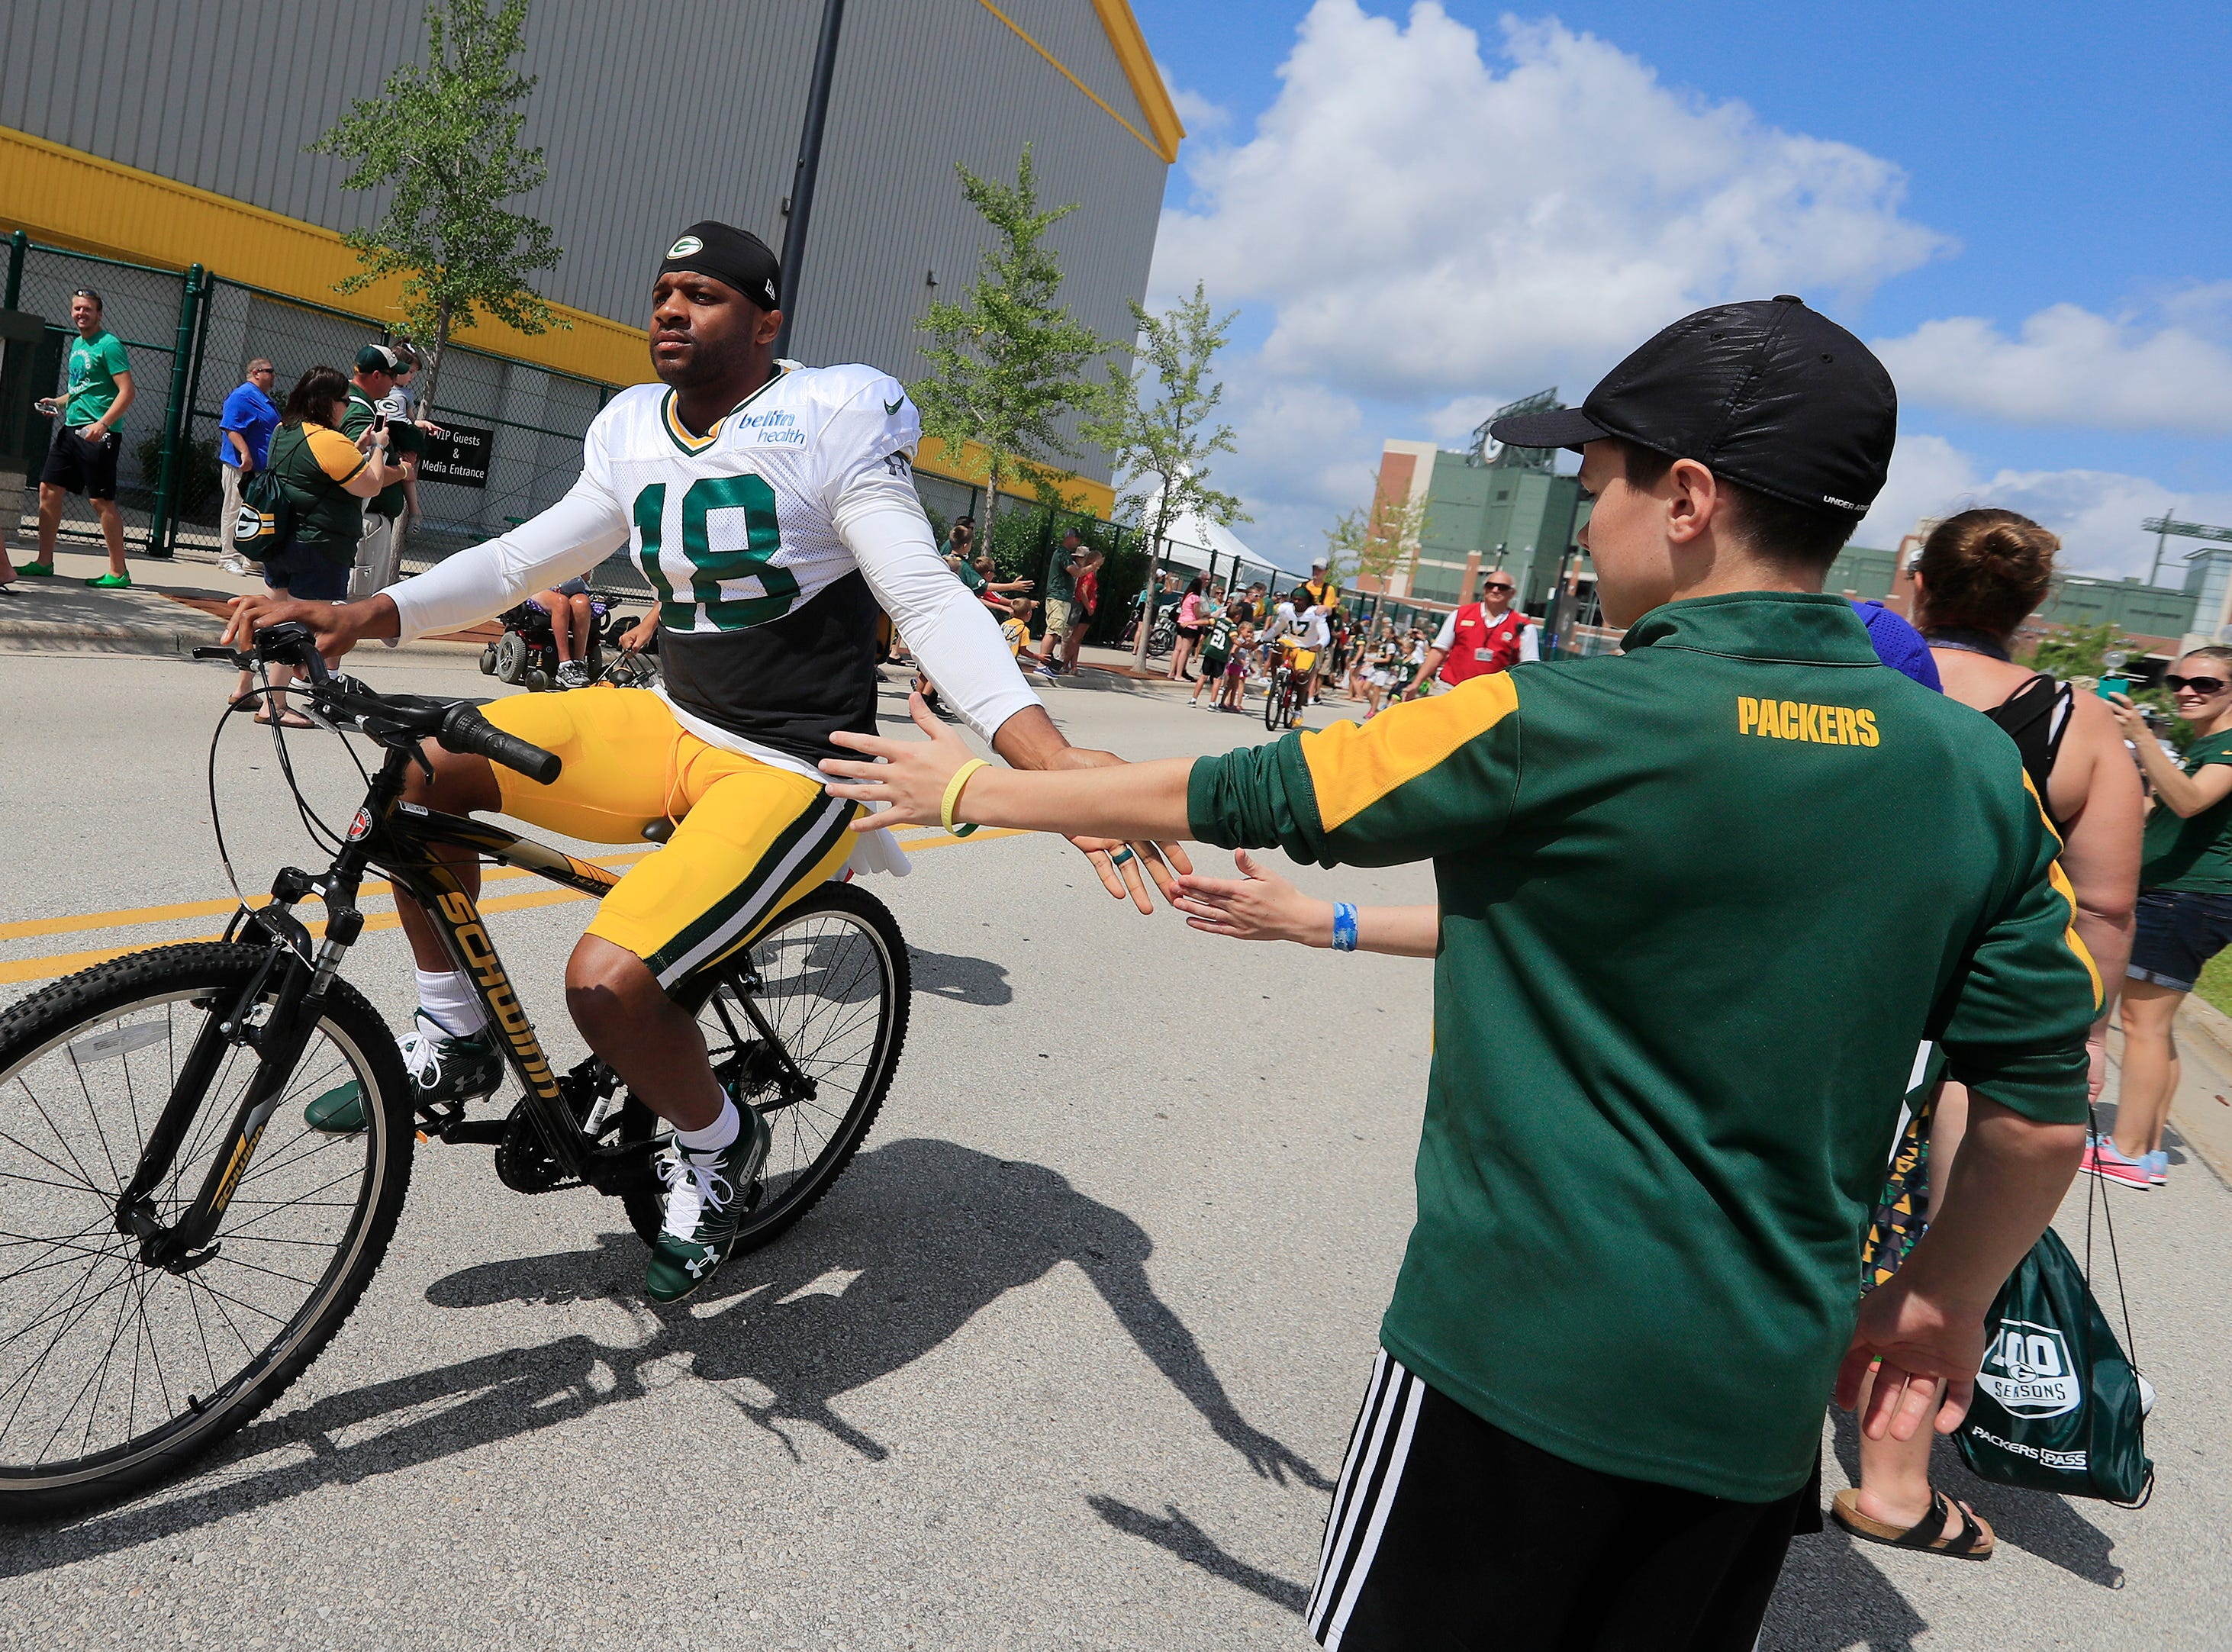 Green Bay Packers wide receiver Randall Cobb (18) rides a bike to during training camp practice at Ray Nitschke Field on Friday, August 3, 2018 in Ashwaubenon, Wis. 